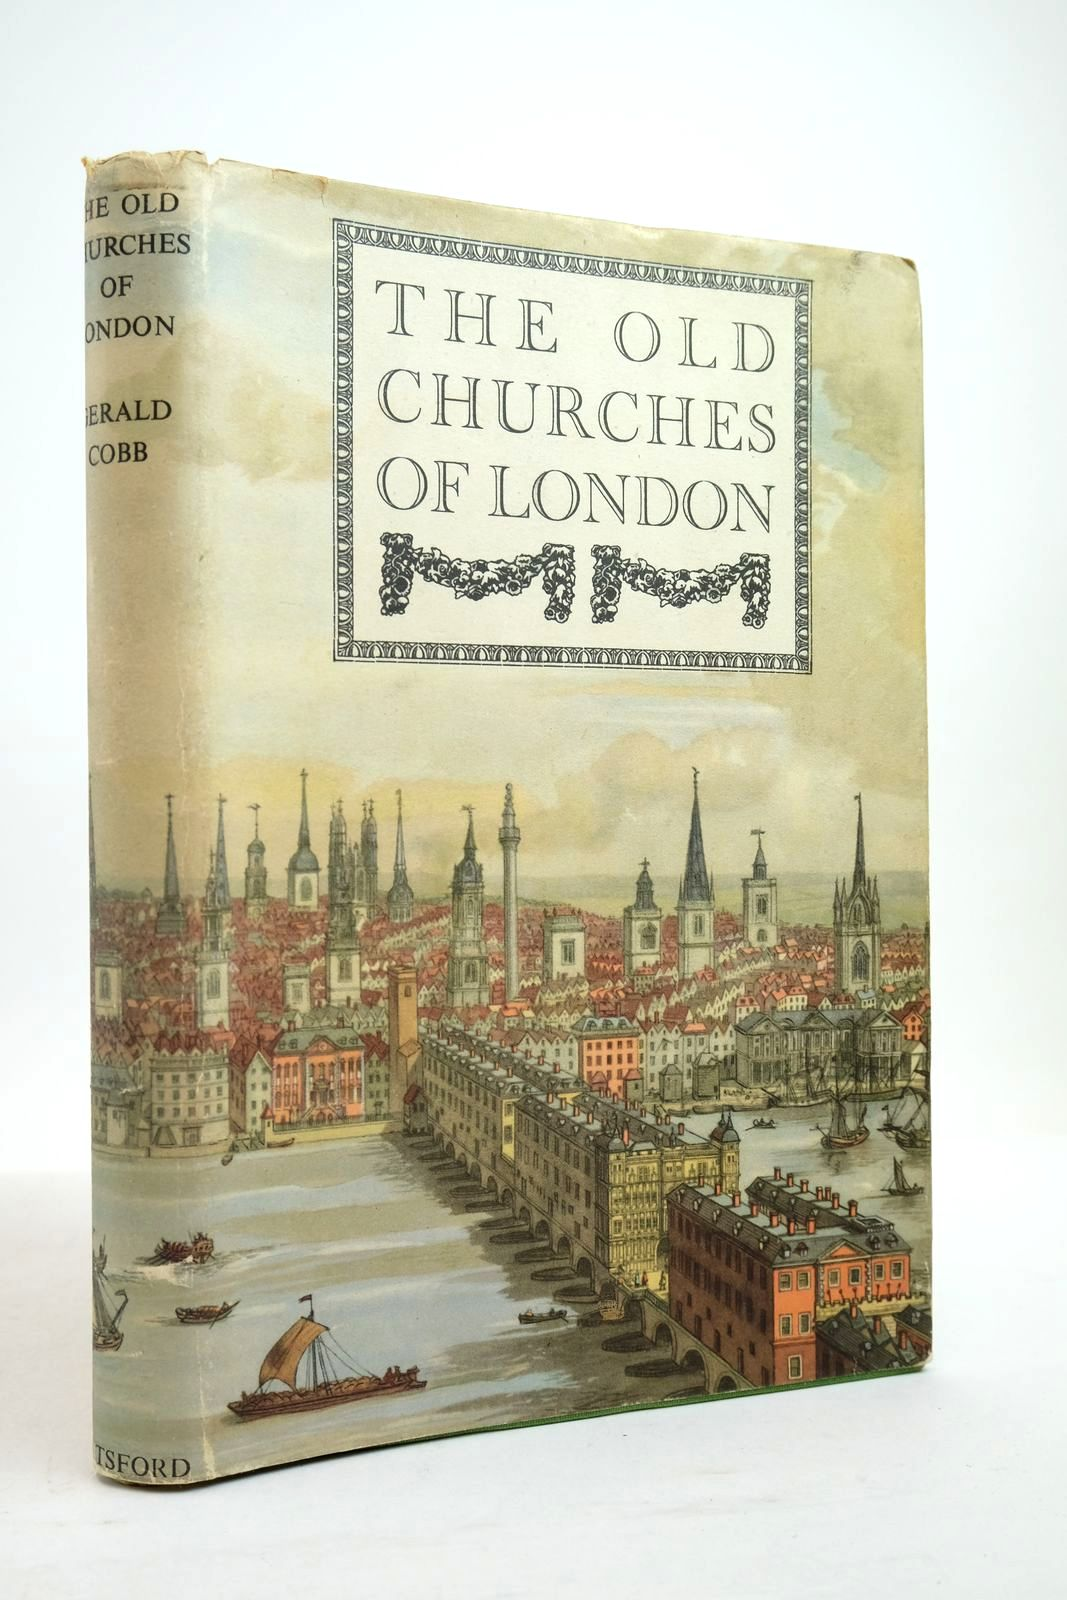 Photo of THE OLD CHURCHES OF LONDON written by Cobb, Gerald published by B.T. Batsford (STOCK CODE: 2134763)  for sale by Stella & Rose's Books